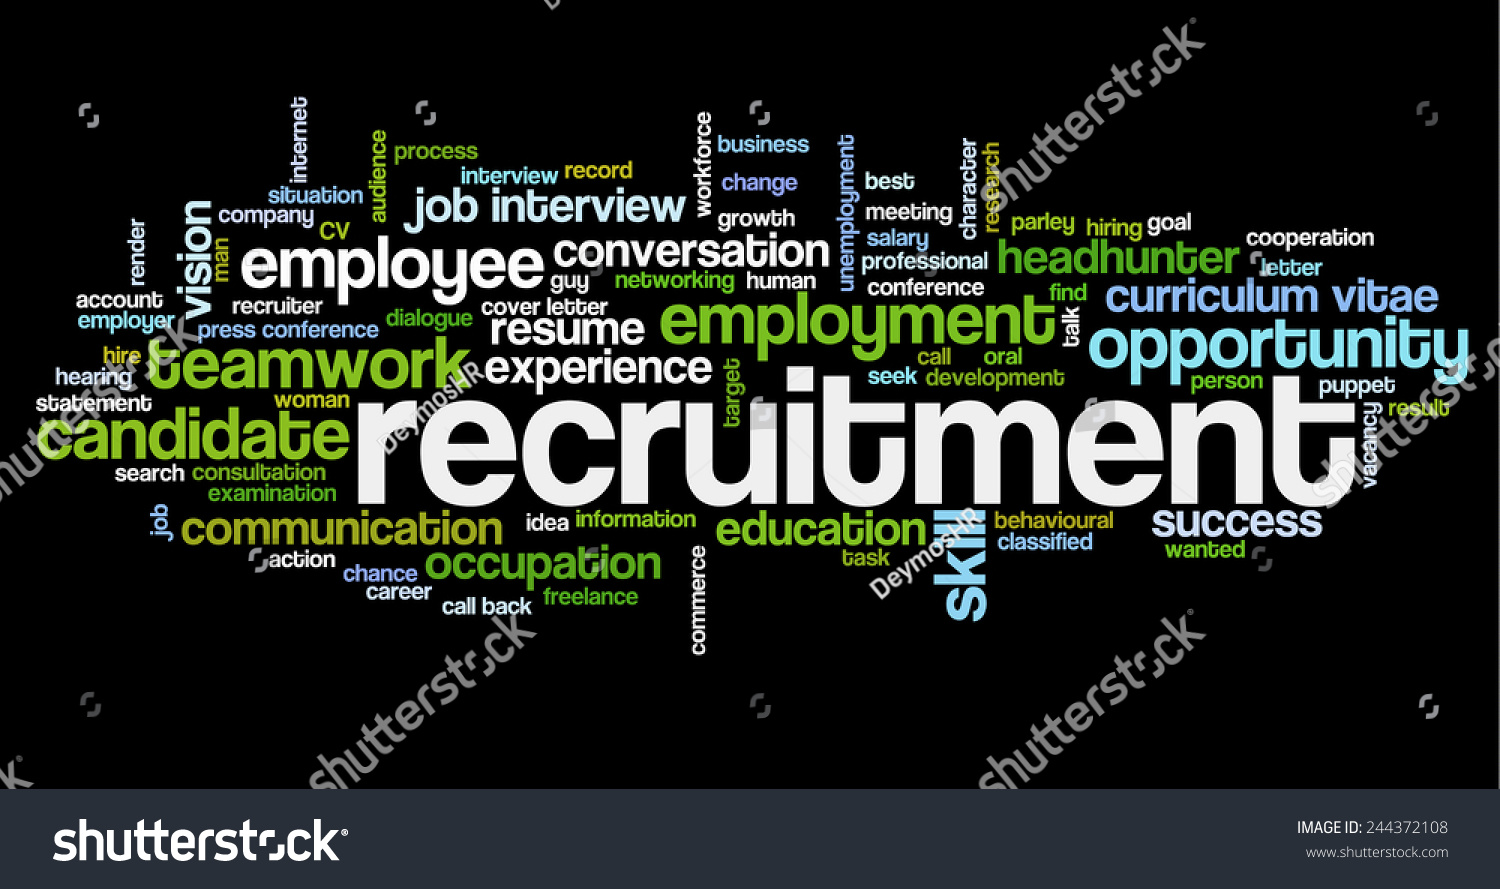 word cloud related job interview employment stock vector 244372108 word cloud related to job interview employment and recruitment